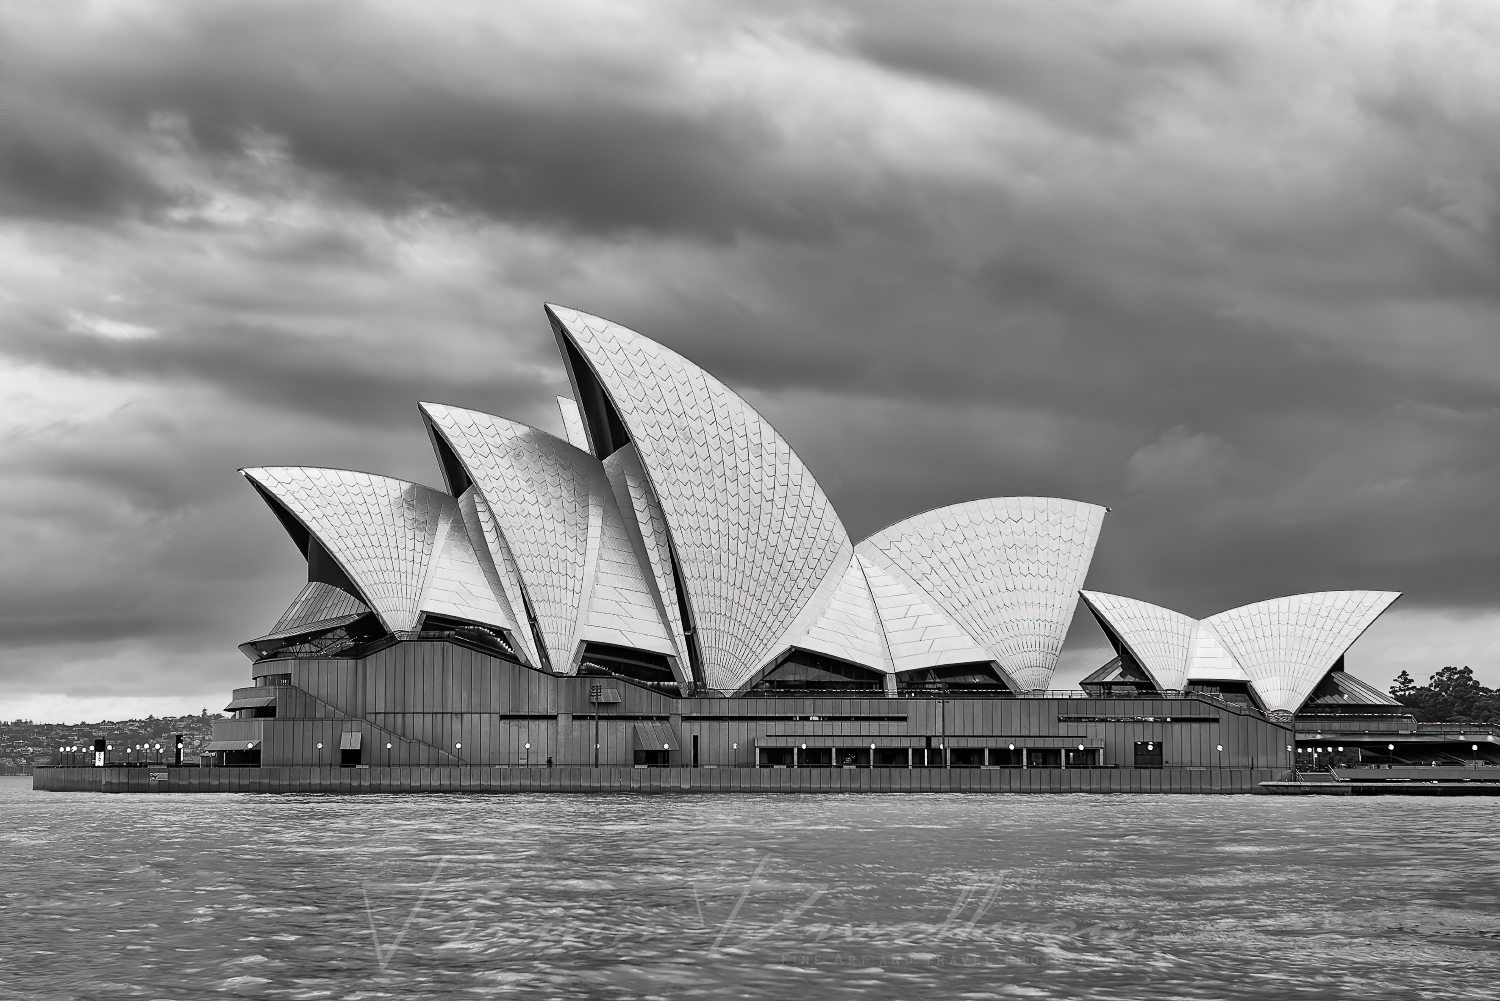 Sydney Opera House and Sydney Harbour viewed from Dawes Point in black and white.